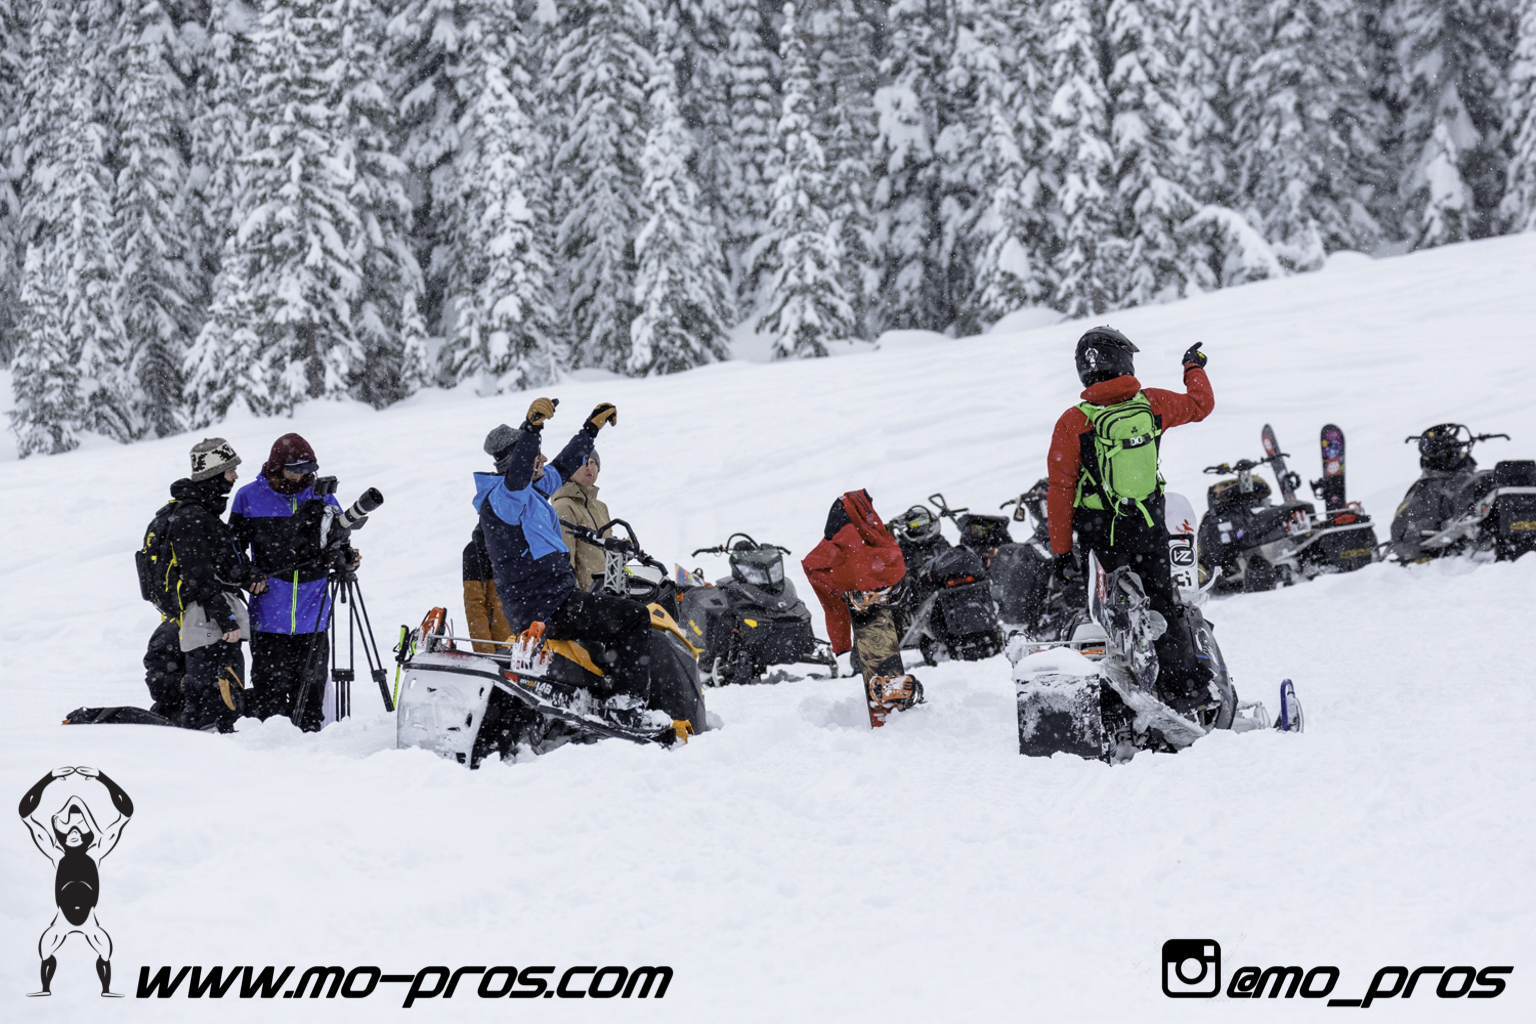 60_Gear_Gun Rack_LinQ Snowboard Ski_Snowbike_Timbersled Rack_Tsaina Rack_CFR rack_Cheetah Factory Racing_Snowboard rack_snowboard_snowmobile bag_Snowmobile_timbersled bag_gas Rack_Ski_Snowbike_Snowbo.jpg